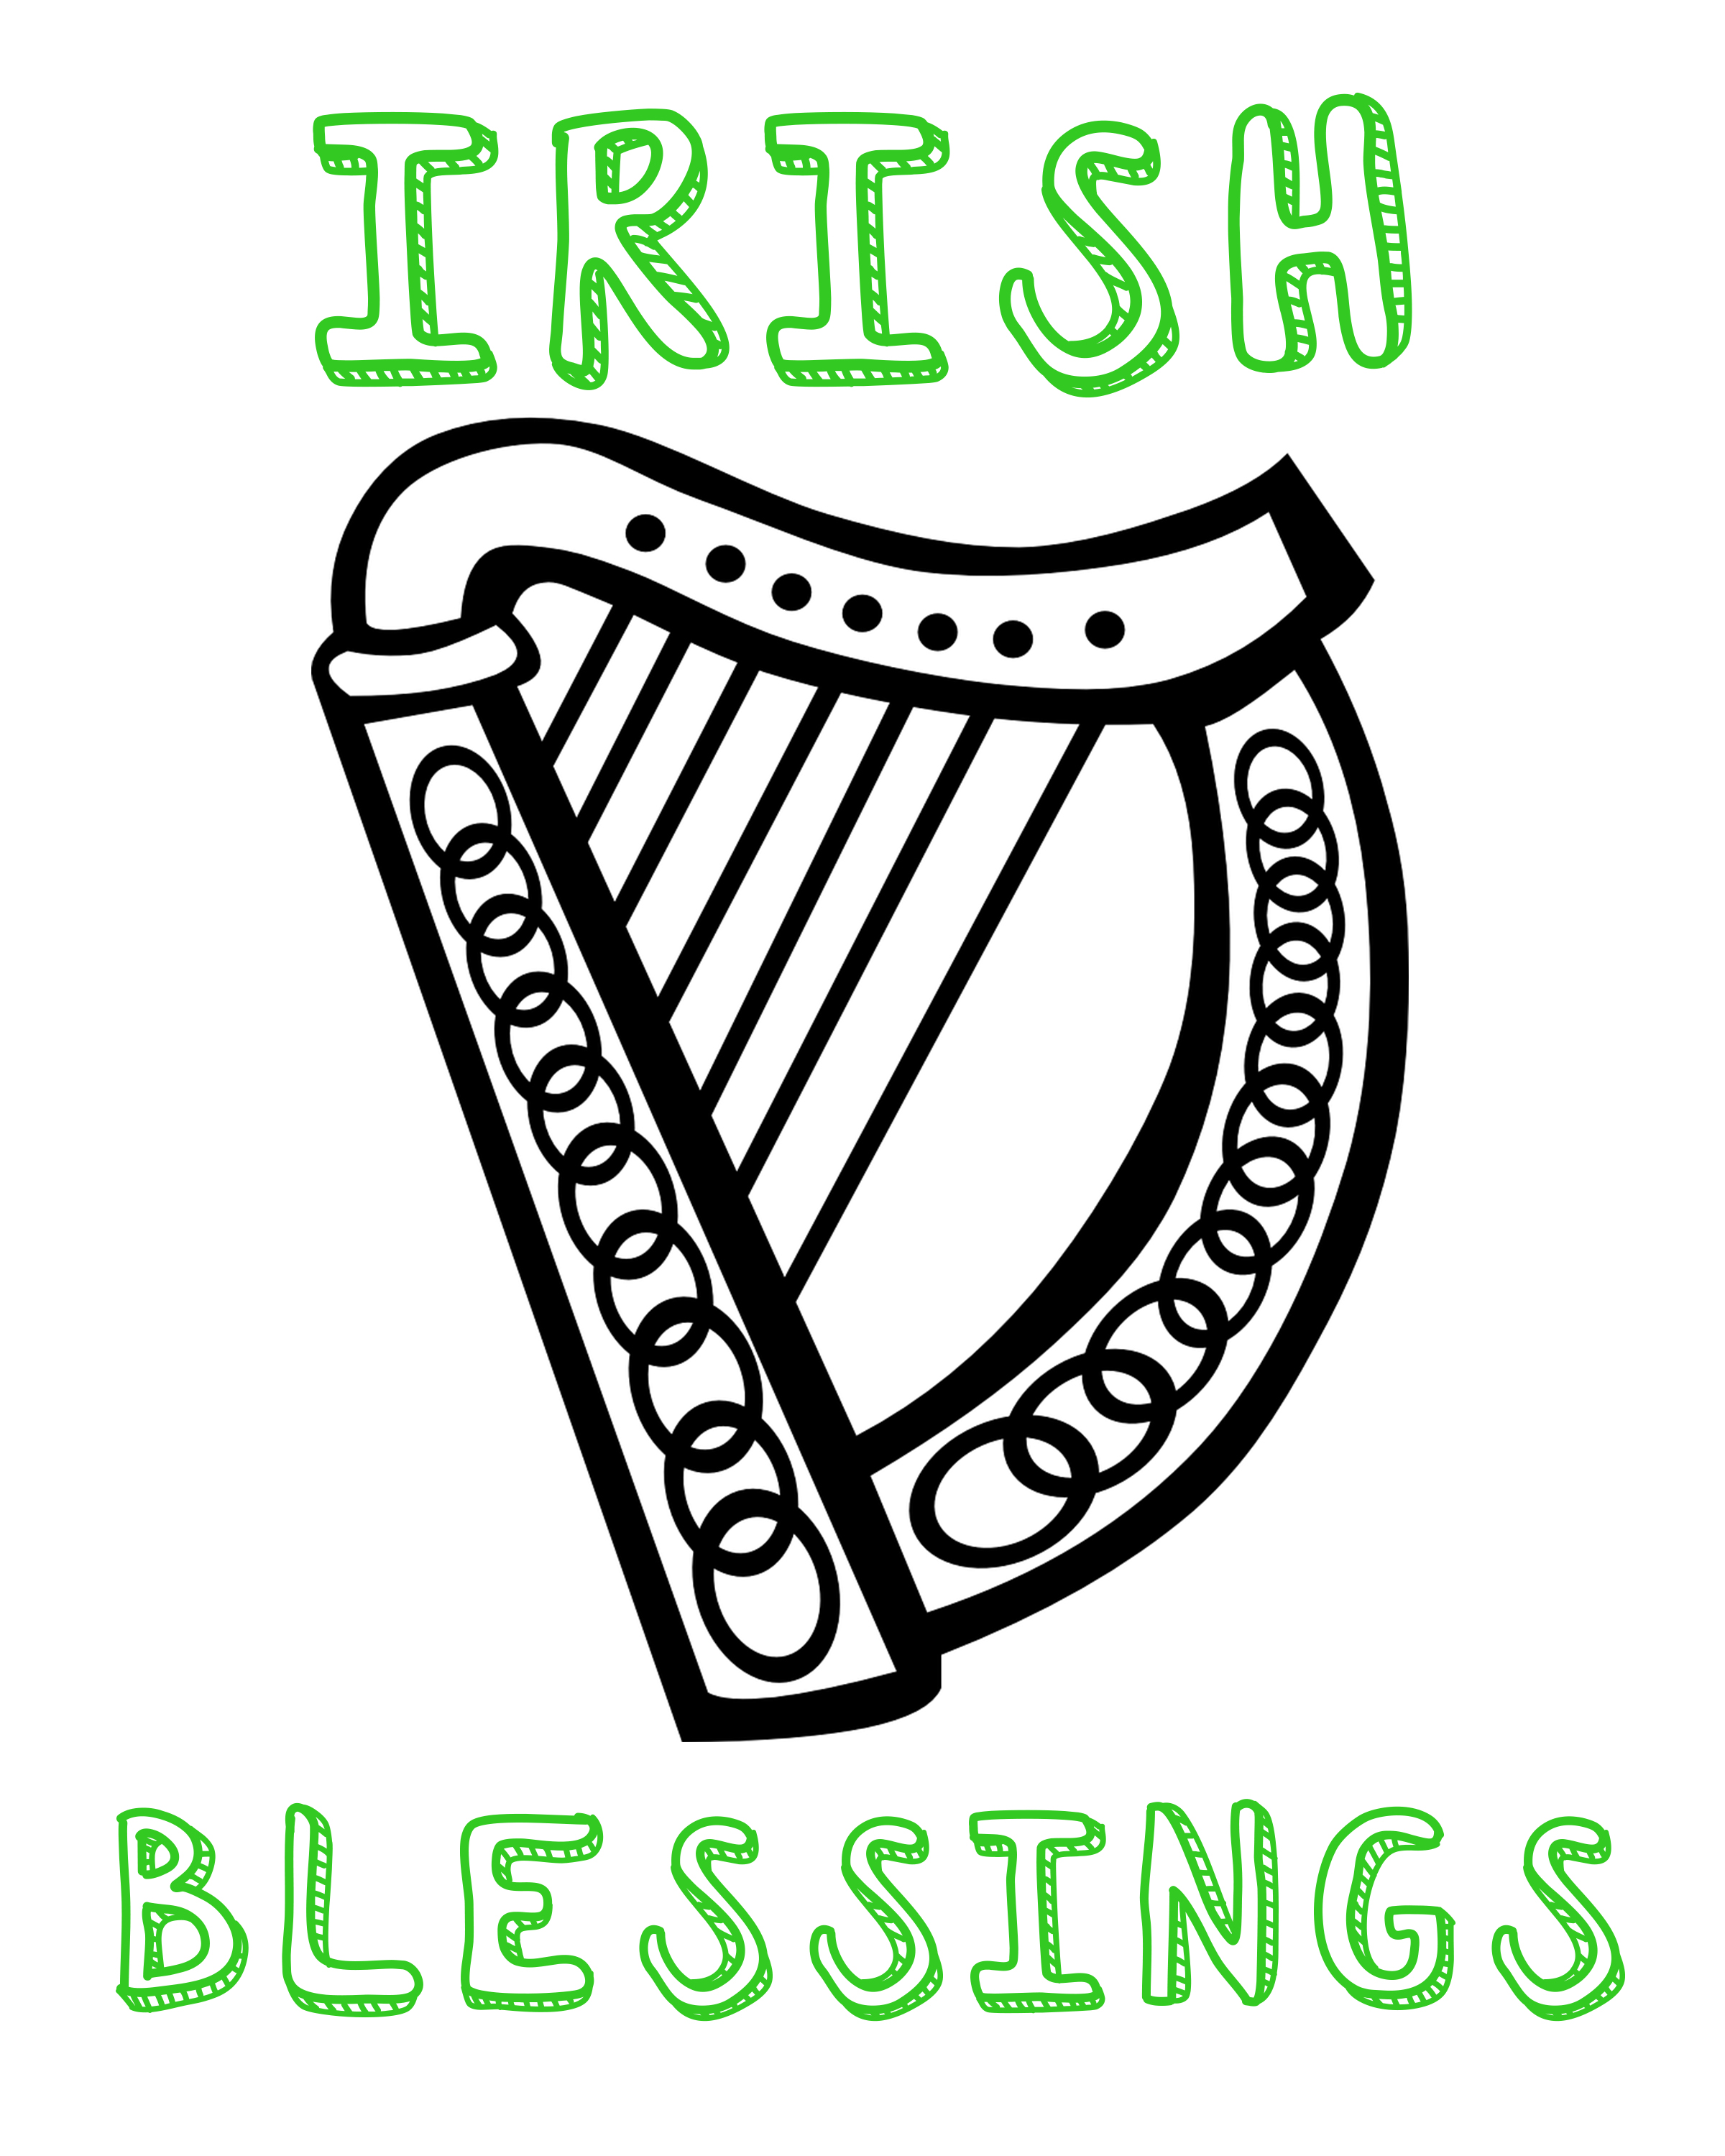 Coloring sheets archives stage presents irish blessings biocorpaavc